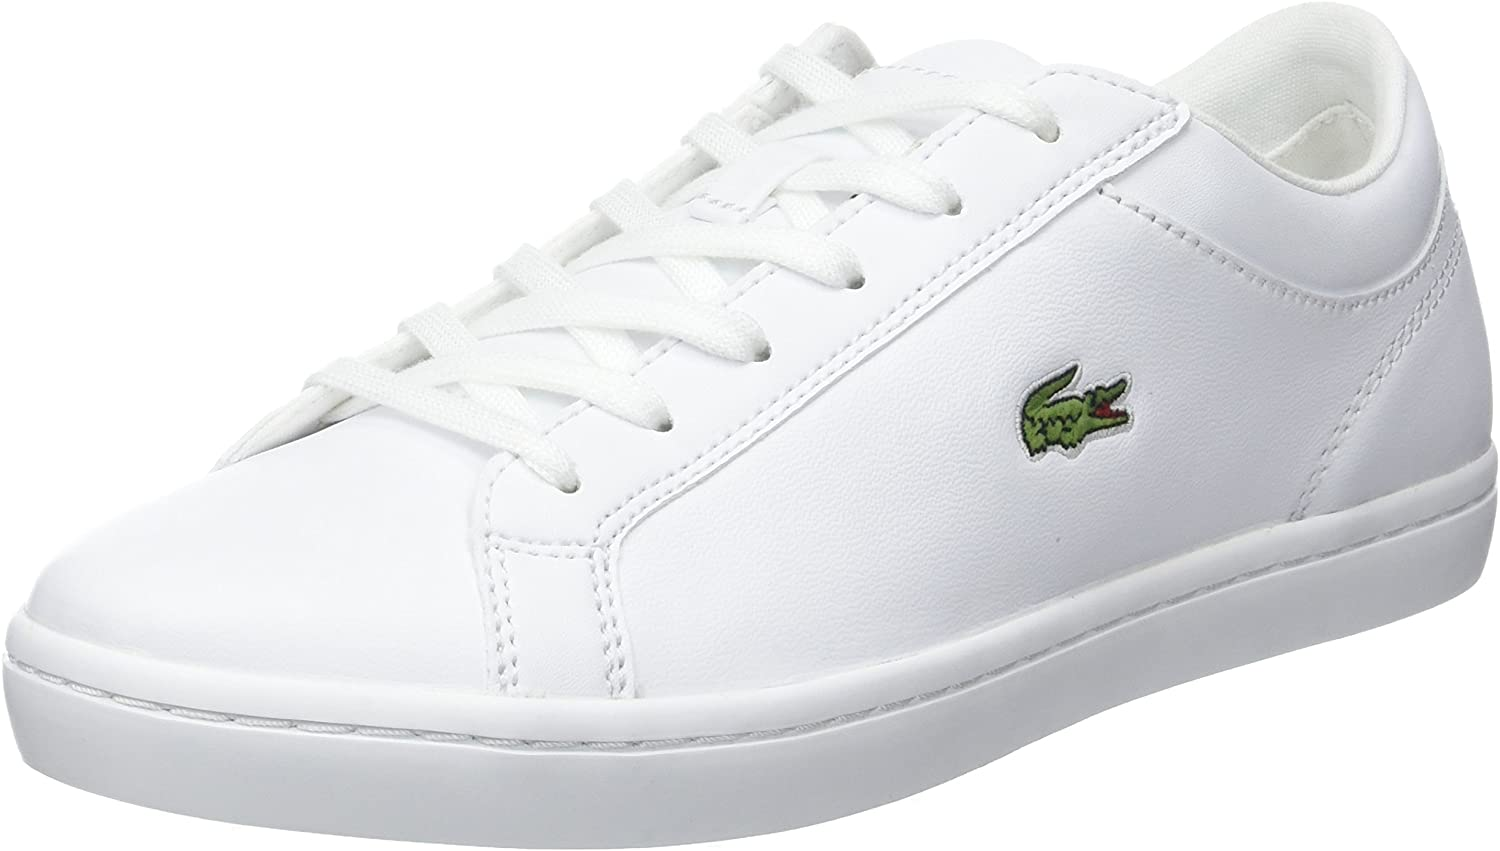 Lacoste Straightset Bl 1 SPW, Zapatillas para Mujer